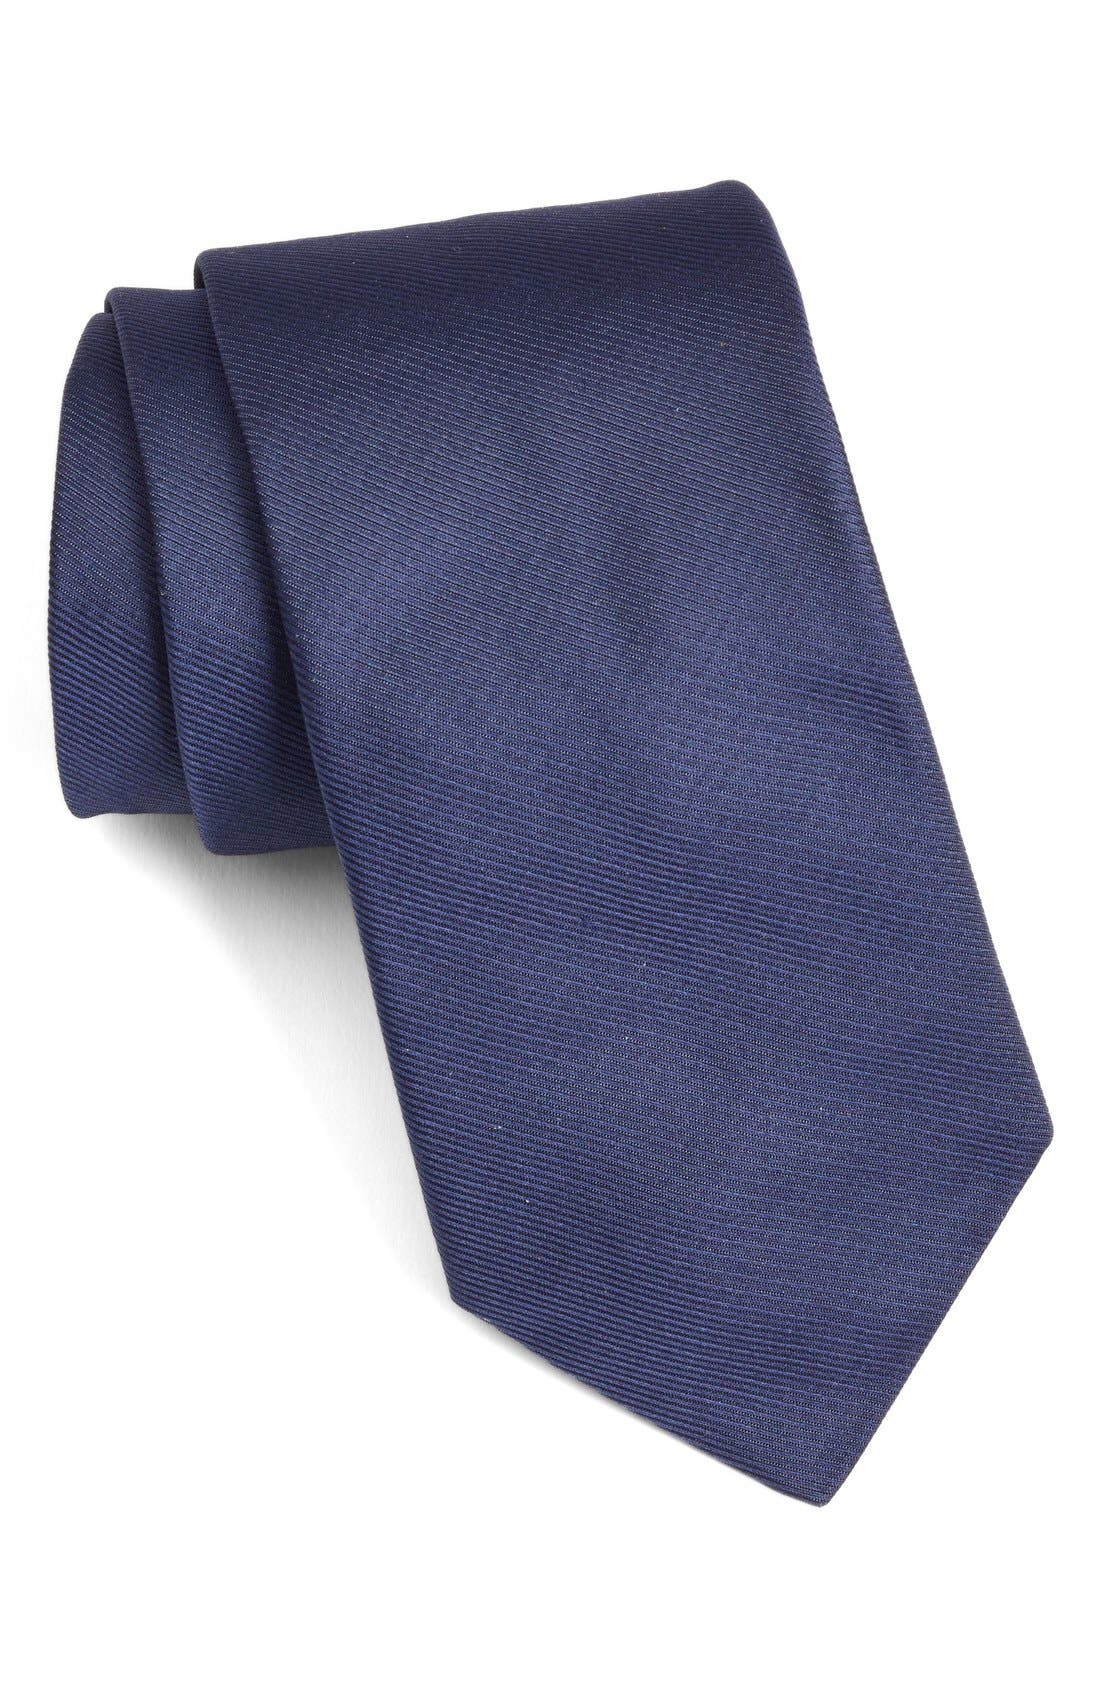 Main Image - Ted Baker London Solid Woven Silk Tie